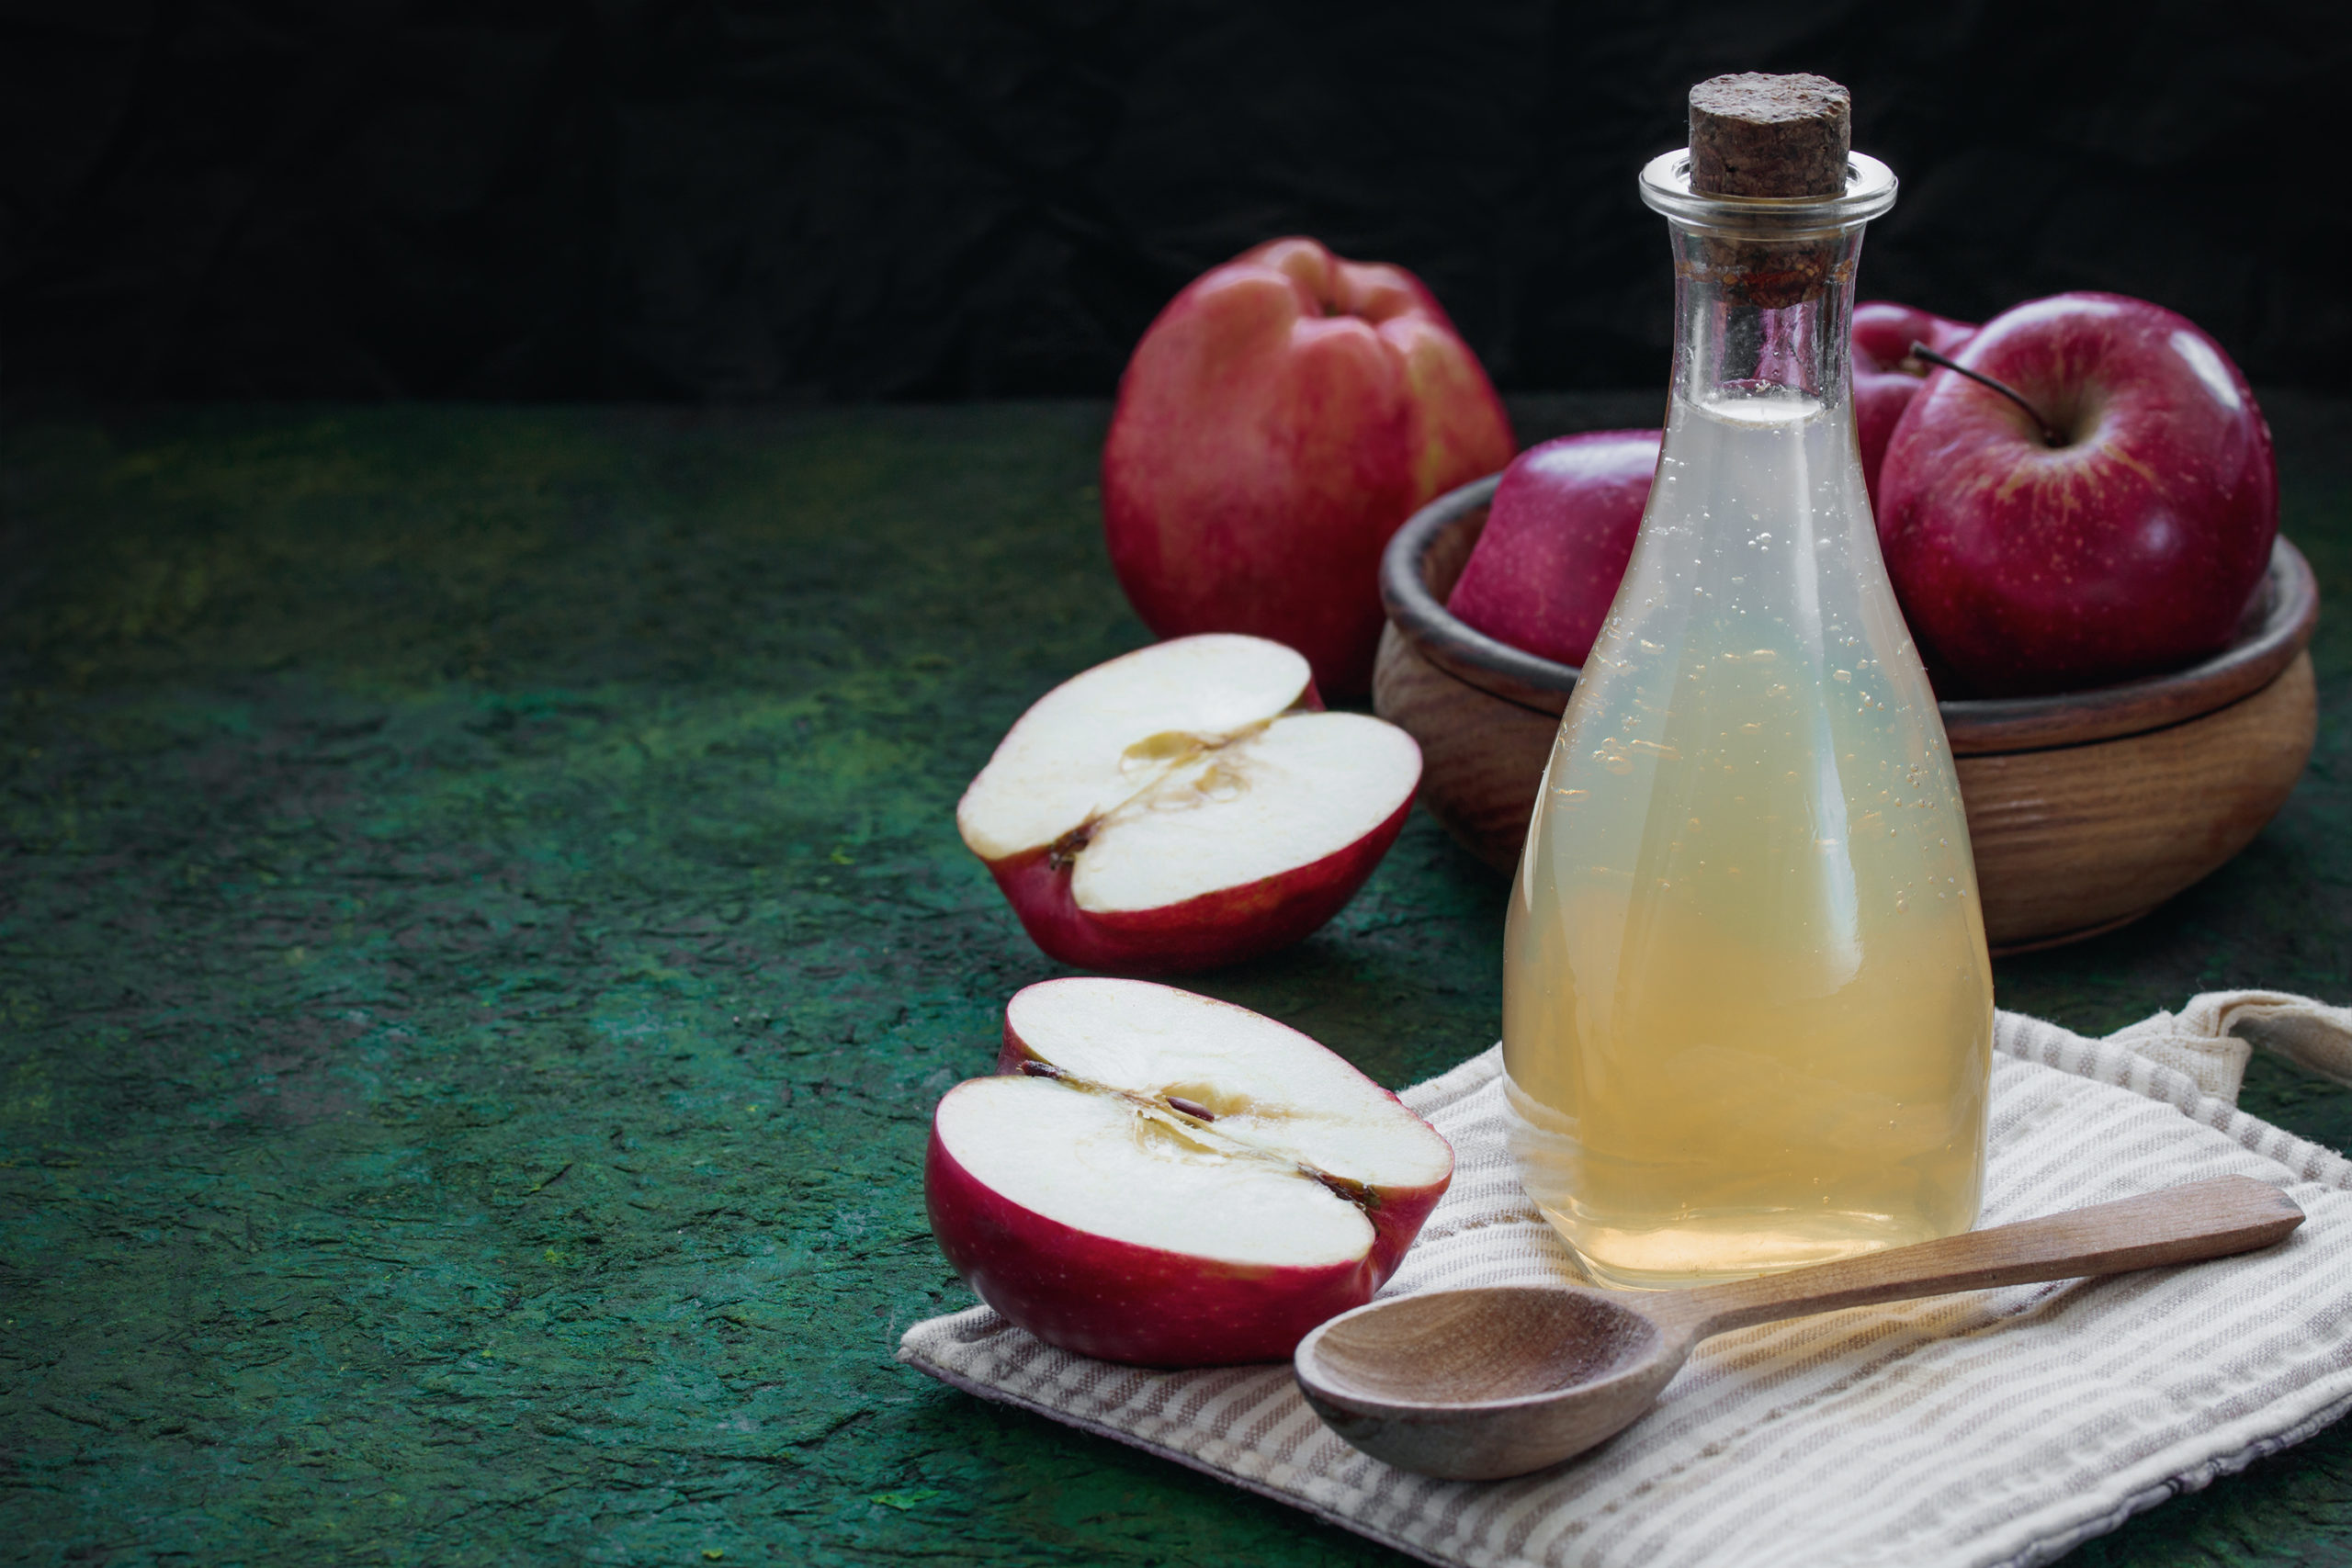 Glass bottle with apple cider vinegar, whole fresh red apples on a green black background